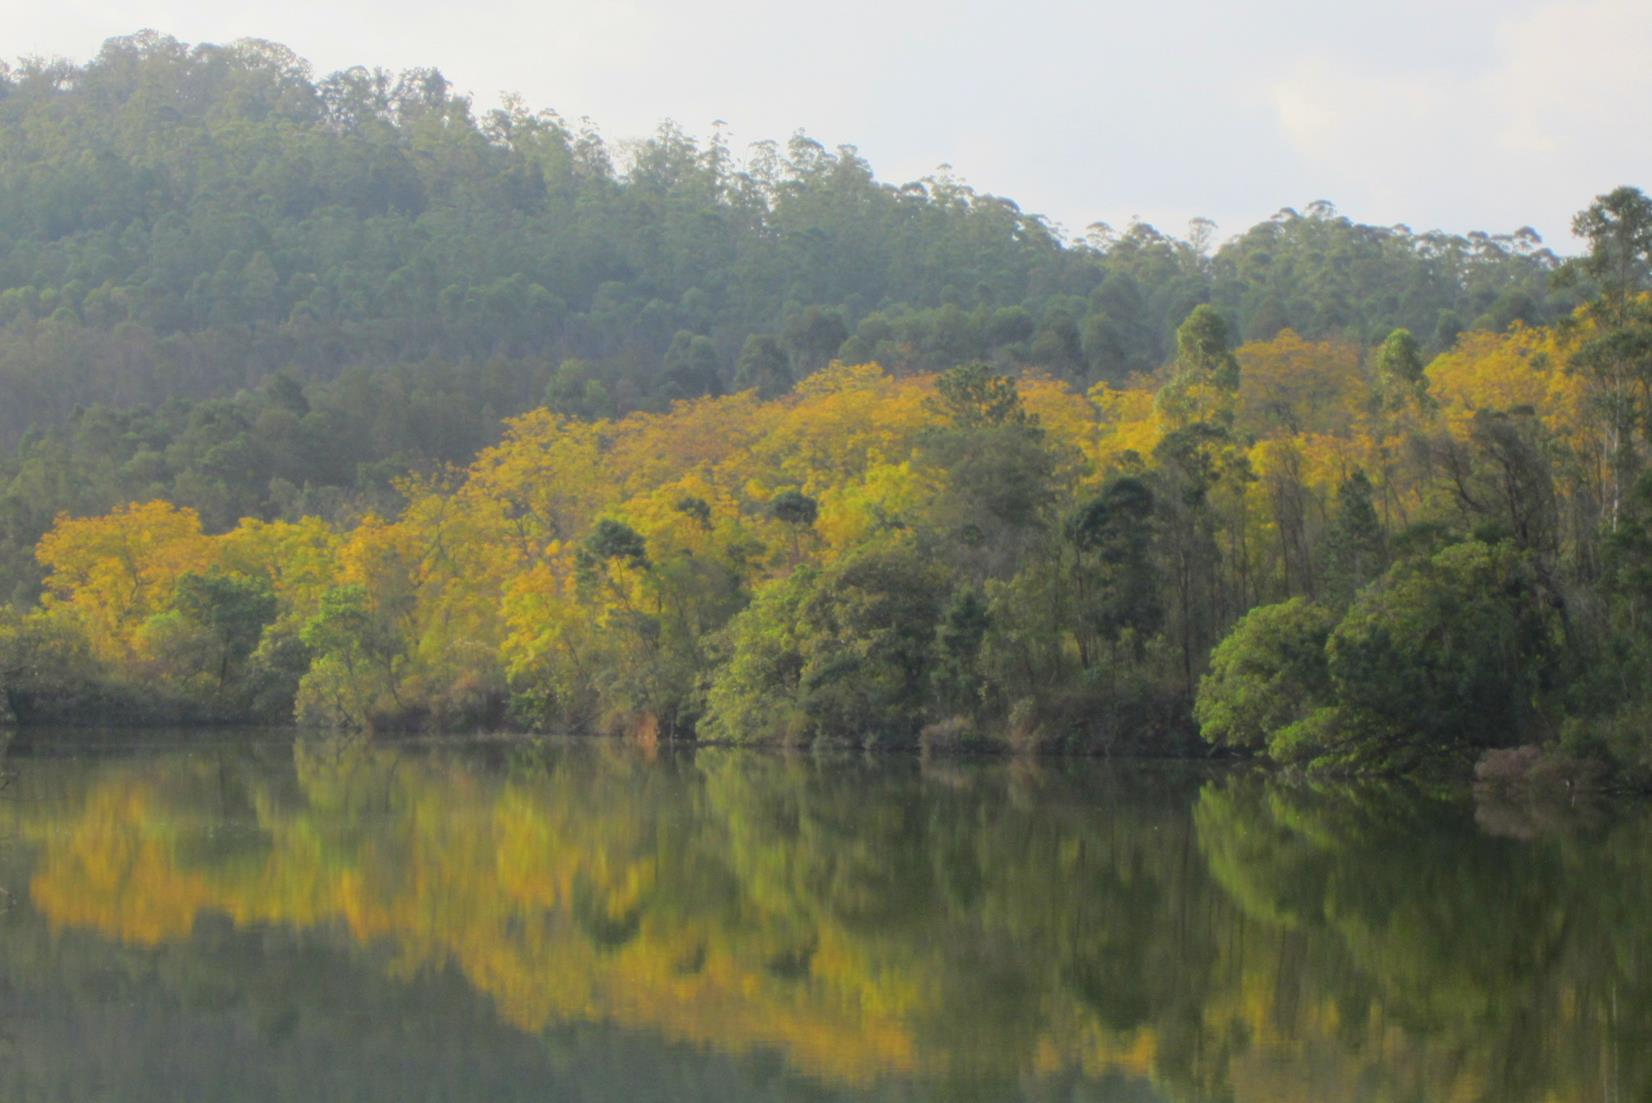 Trees reflecting in the Mlilwane dam.